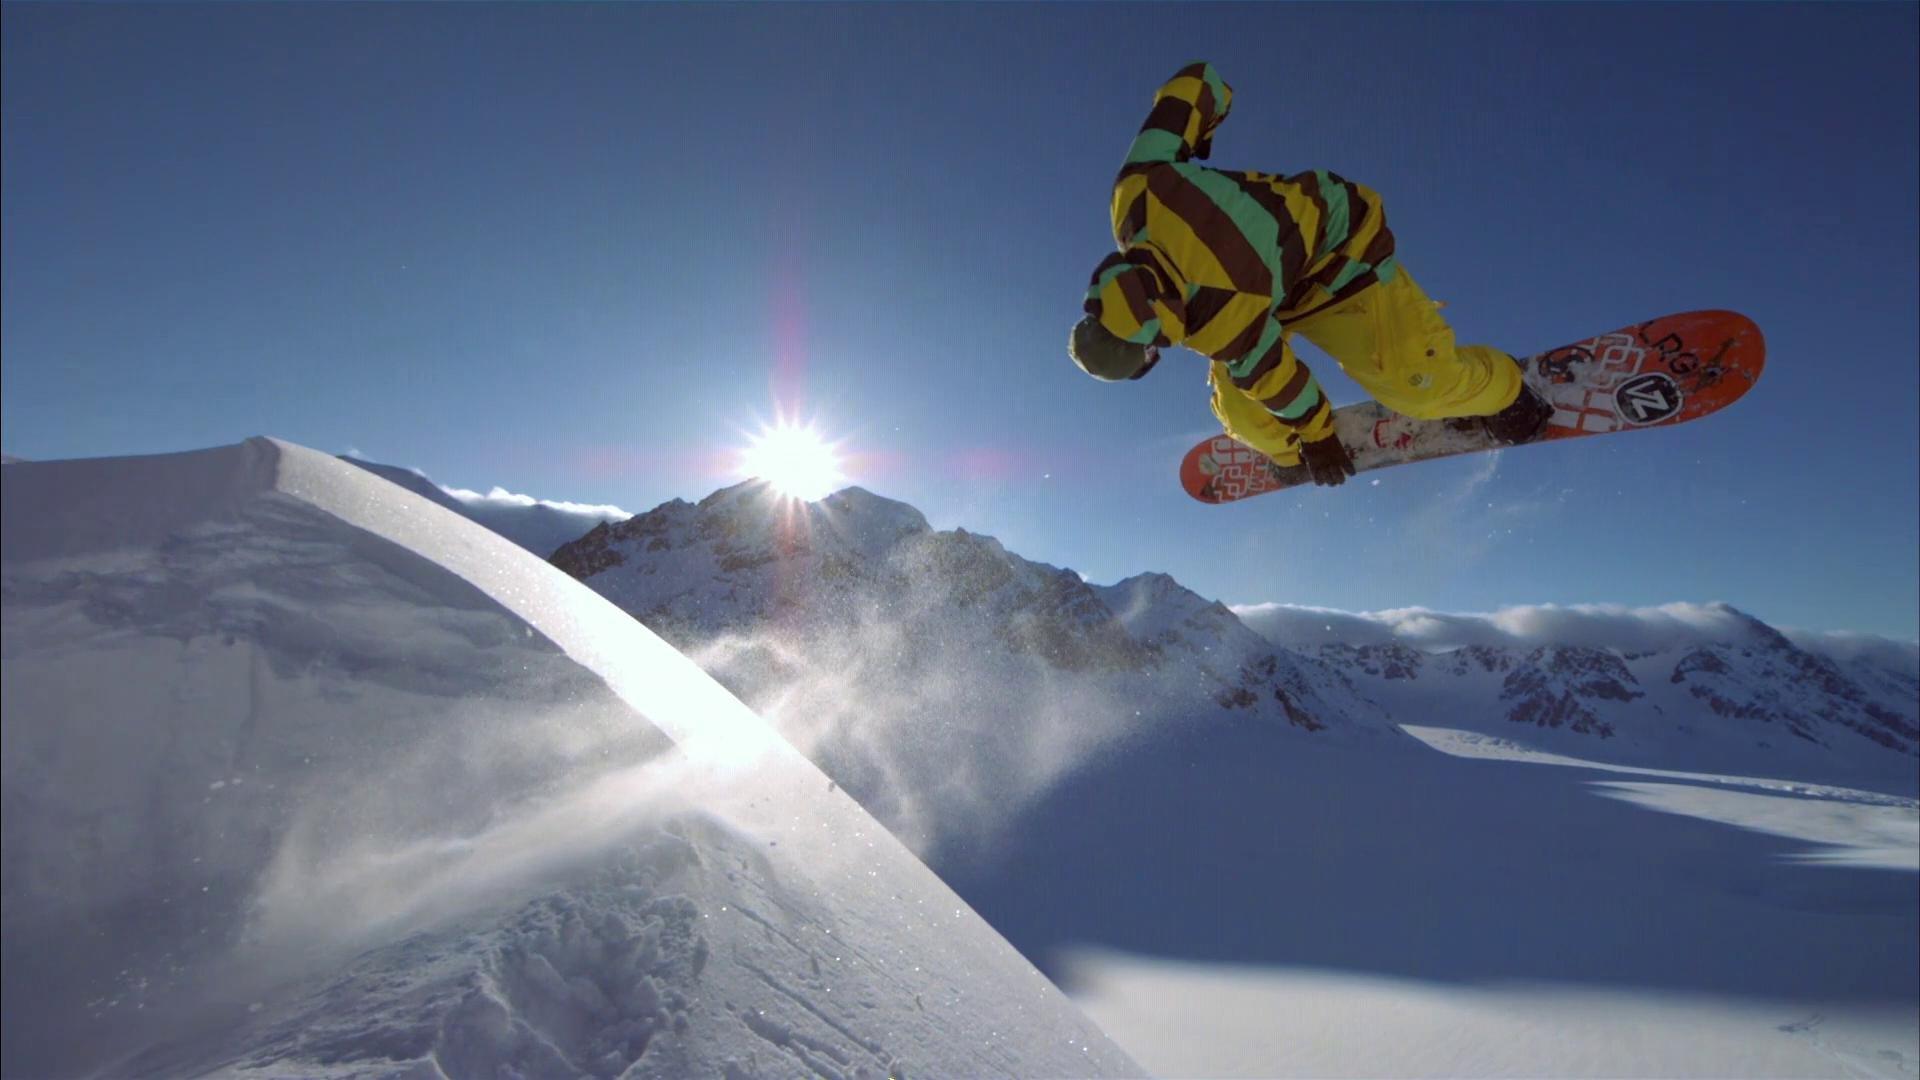 Awesome Snowboarding Free Wallpaper Id55802 For Hd